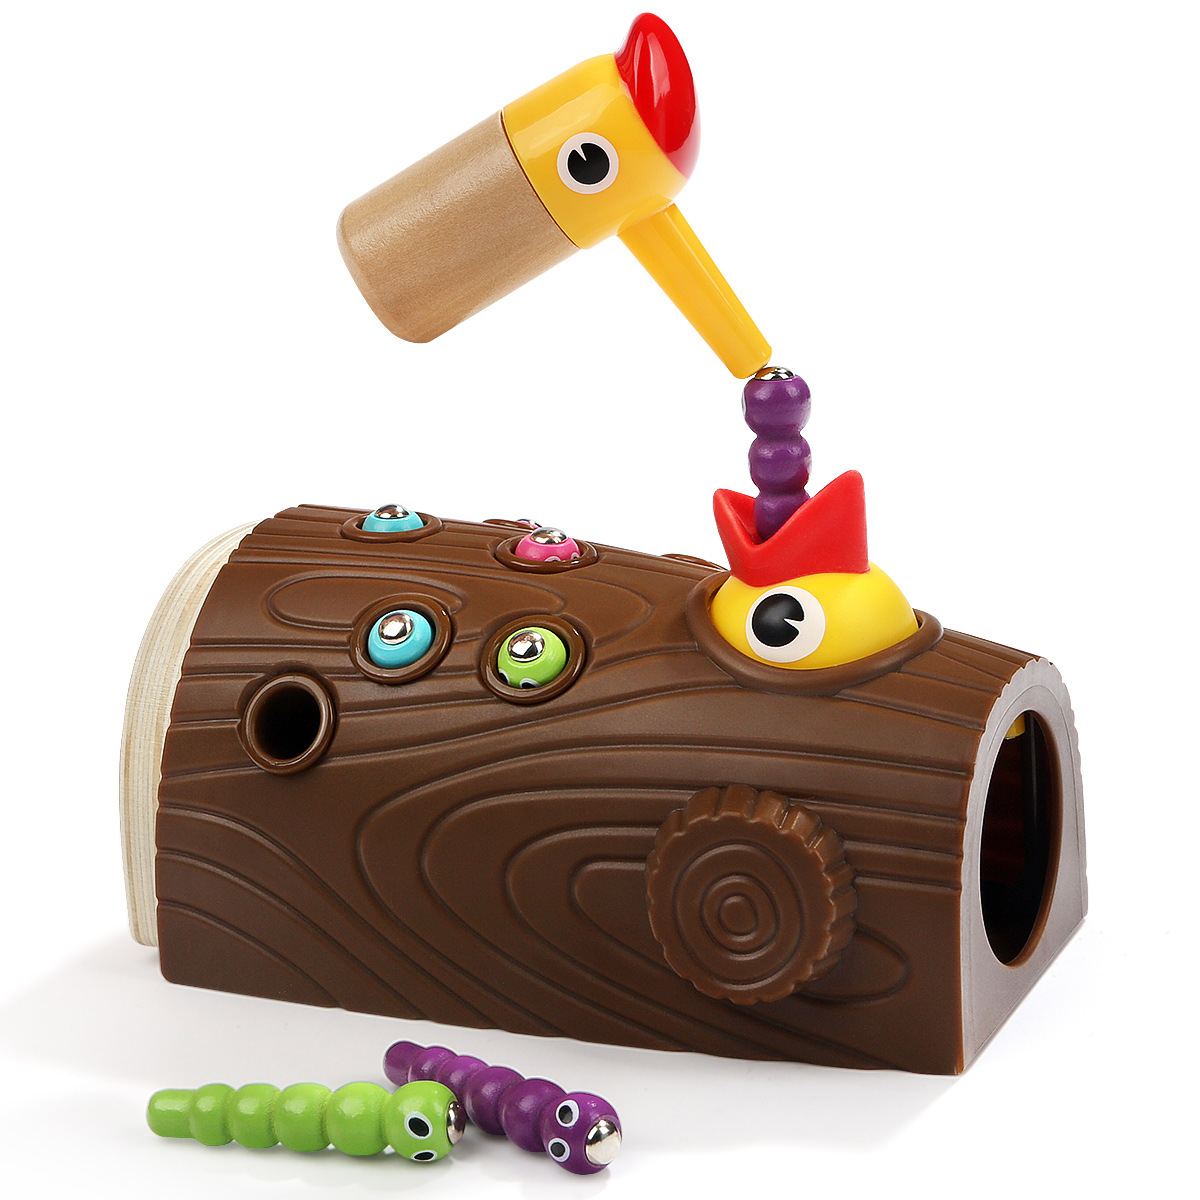 Montessori STEM Educational Toys For Children Wooden Toys Woodpecker Catching Bugs With Magnet Fishing New Year Gift For Boys